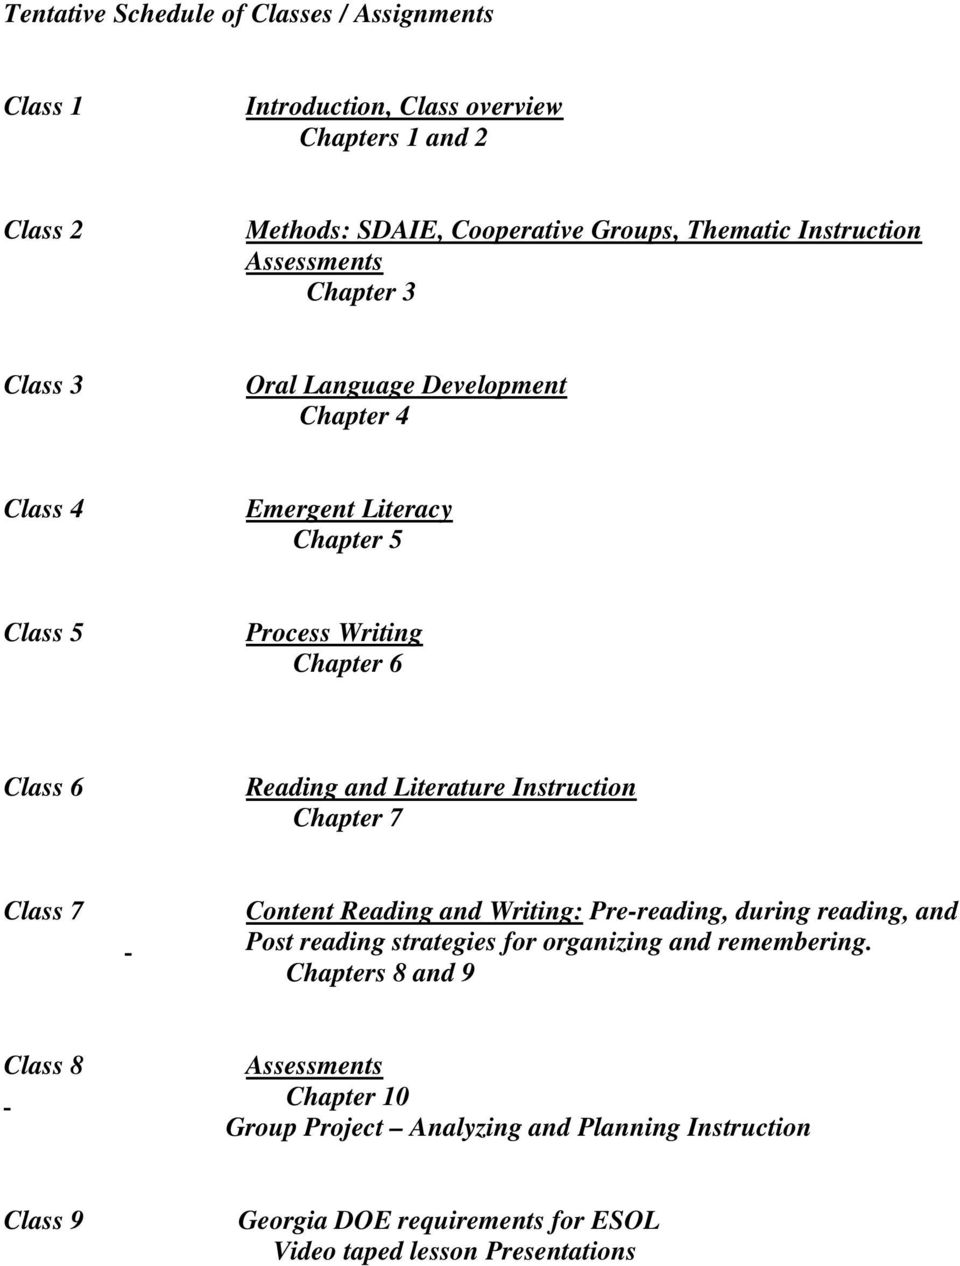 Literature Instruction Chapter 7 Class 7 Content Reading and Writing: Pre-reading, during reading, and Post reading strategies for organizing and remembering.